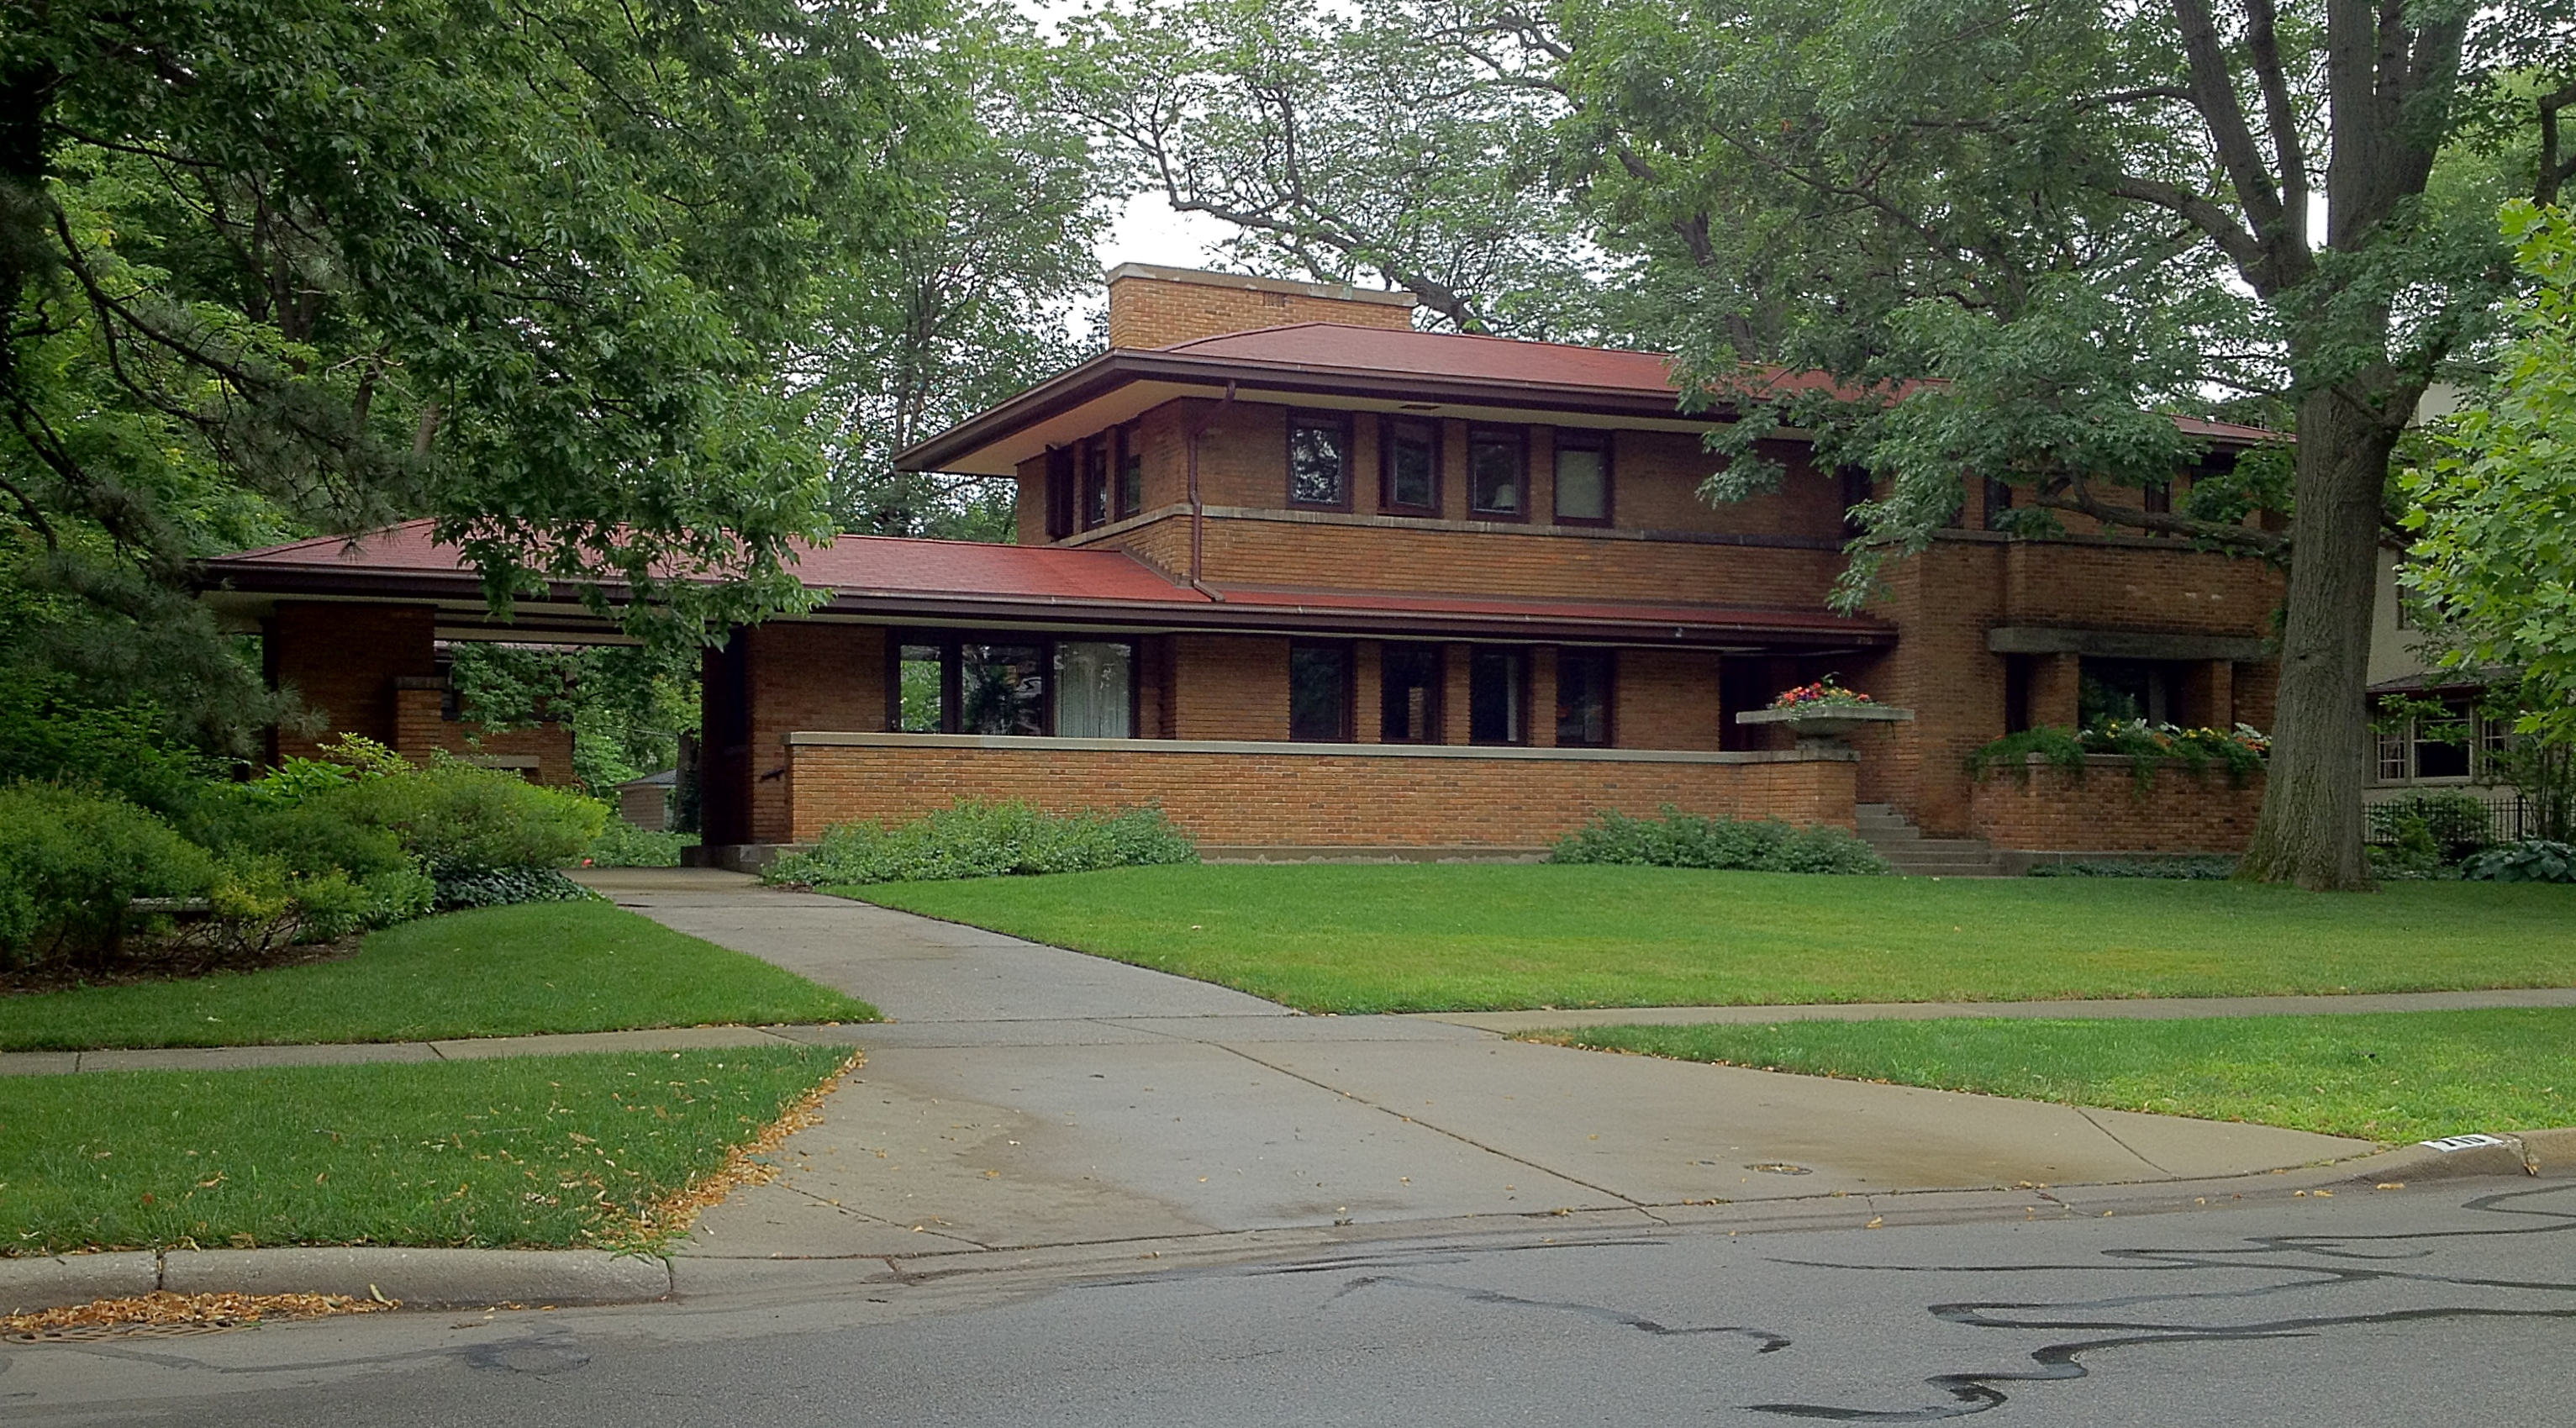 Frank Lloyd Wright Prairie Houses frank lloyd wright's oak park, illinois designs: the prairie